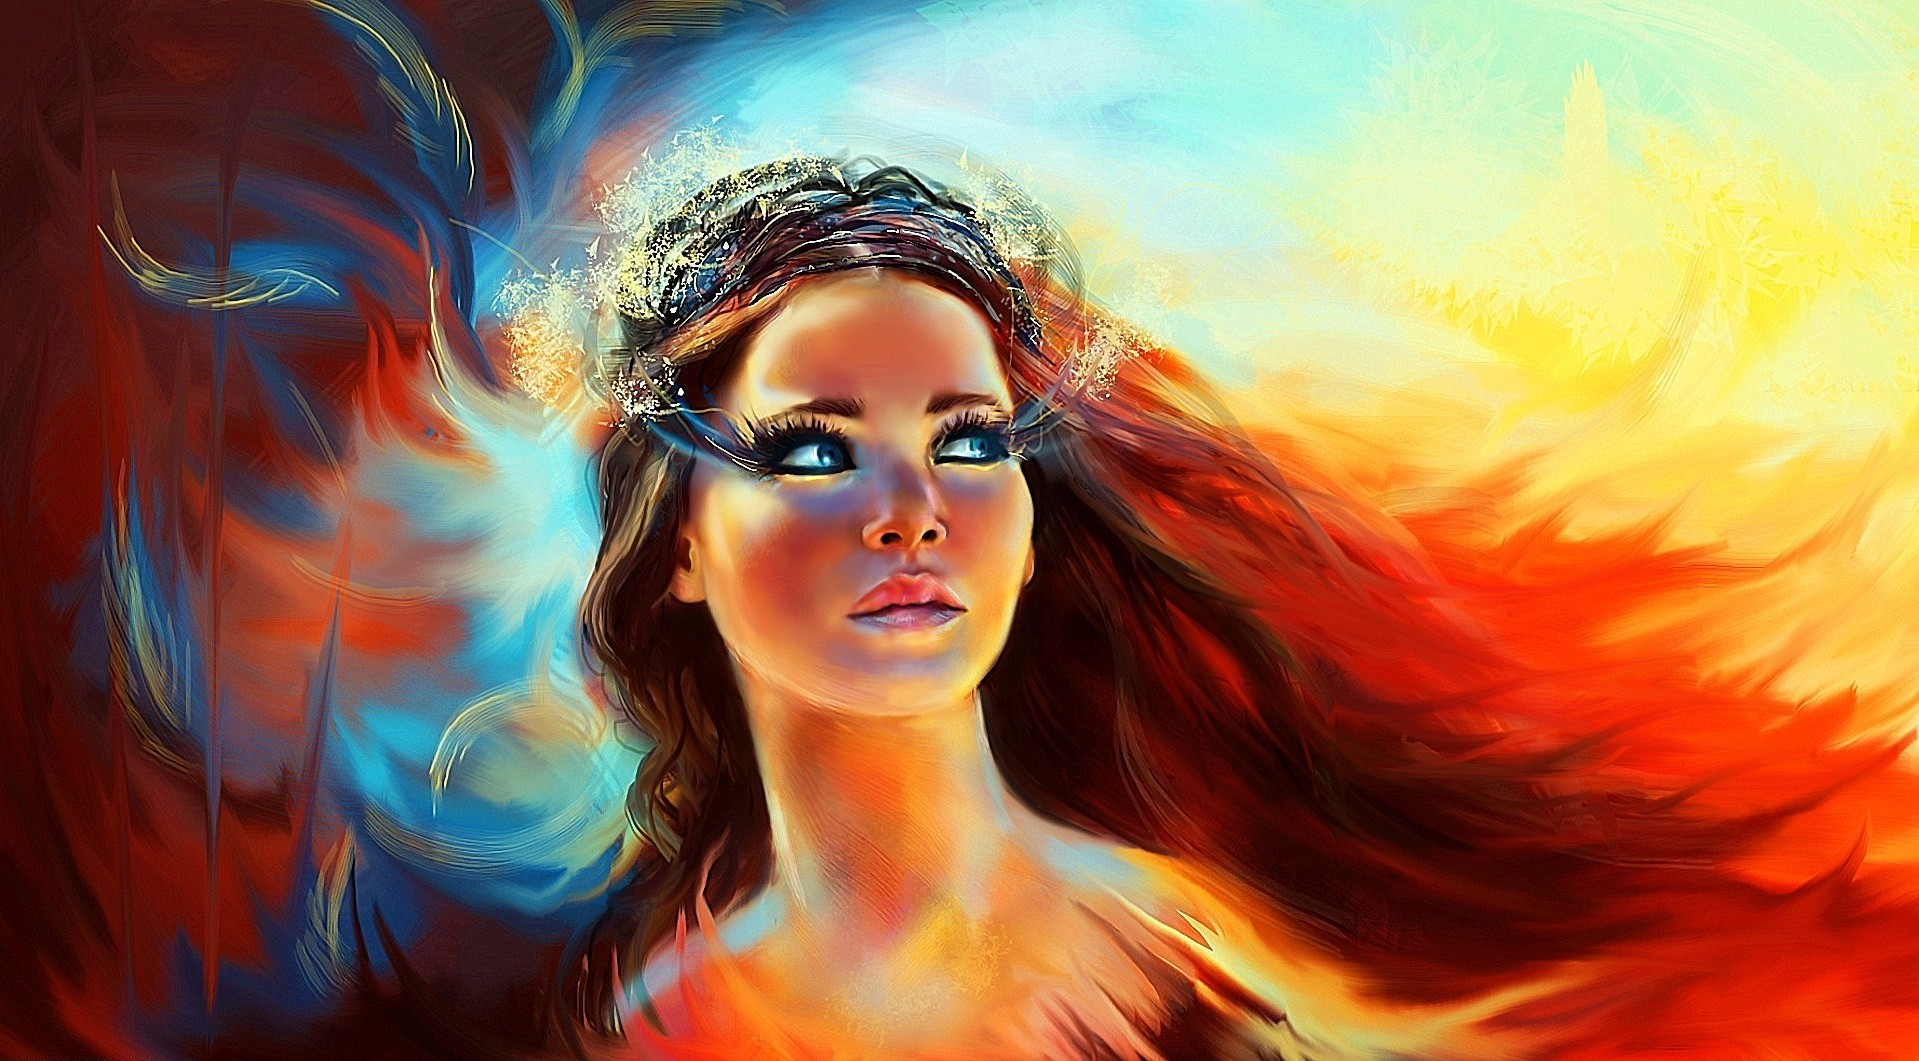 Cute Animated Girl Wallpapers For Mobile Women Artwork Movies Hunger Games The Hunger Games